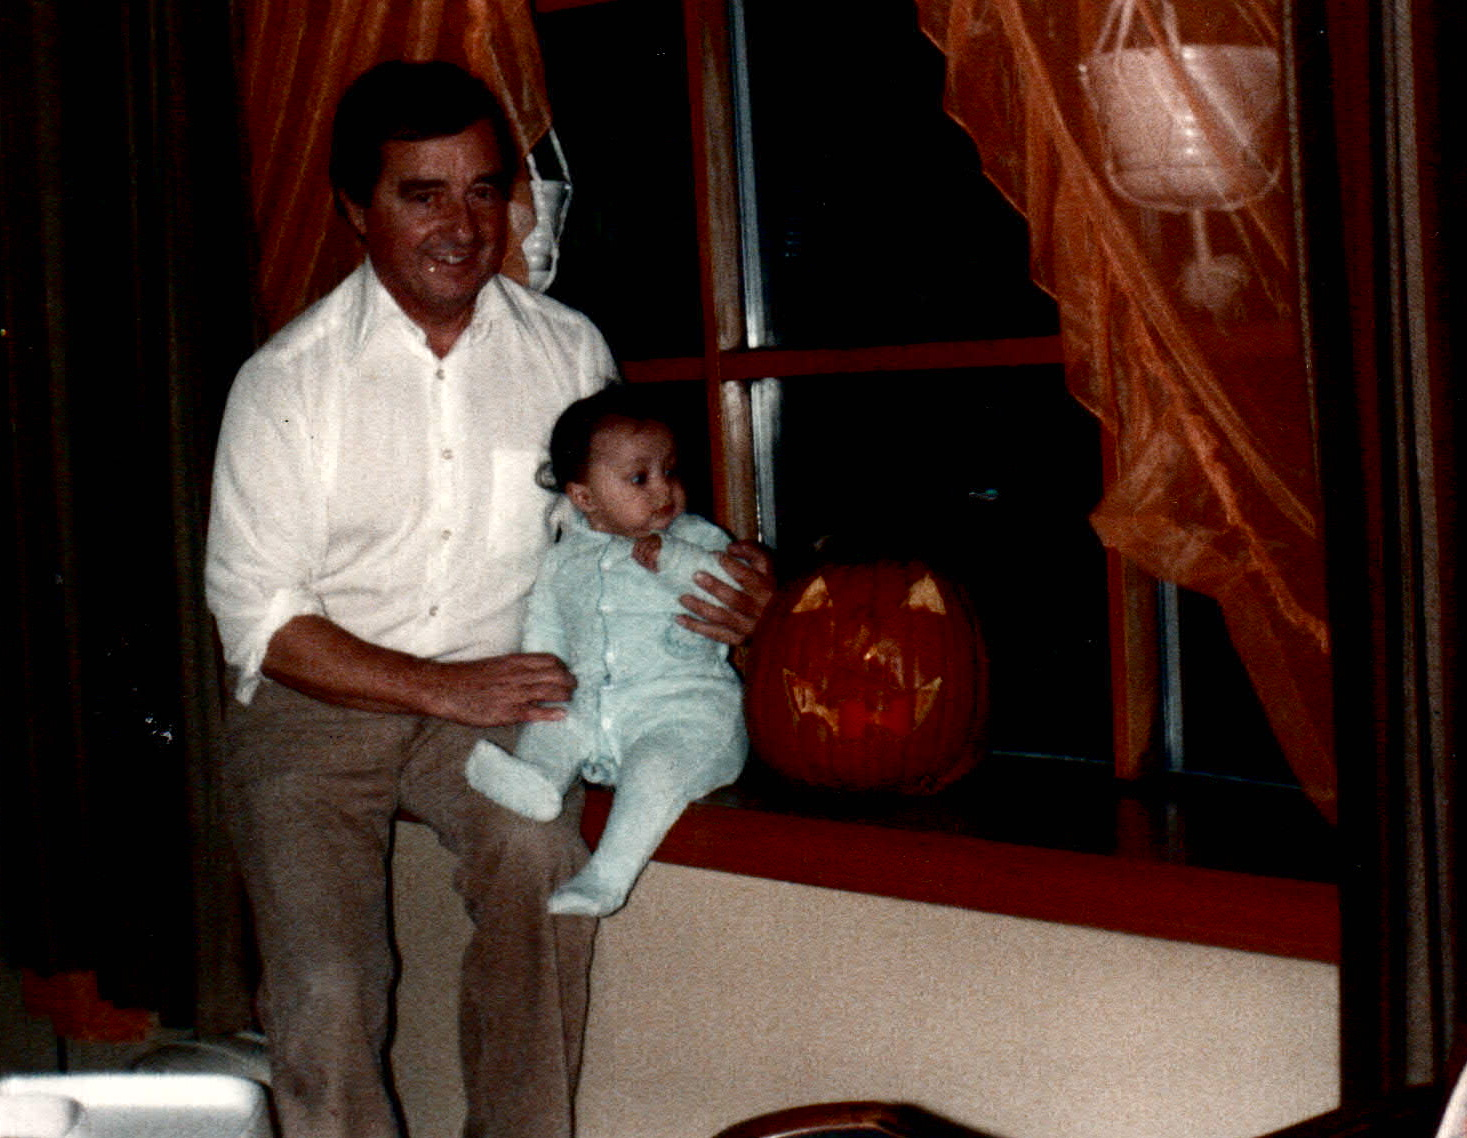 Dad & baby me being horrified by Halloween